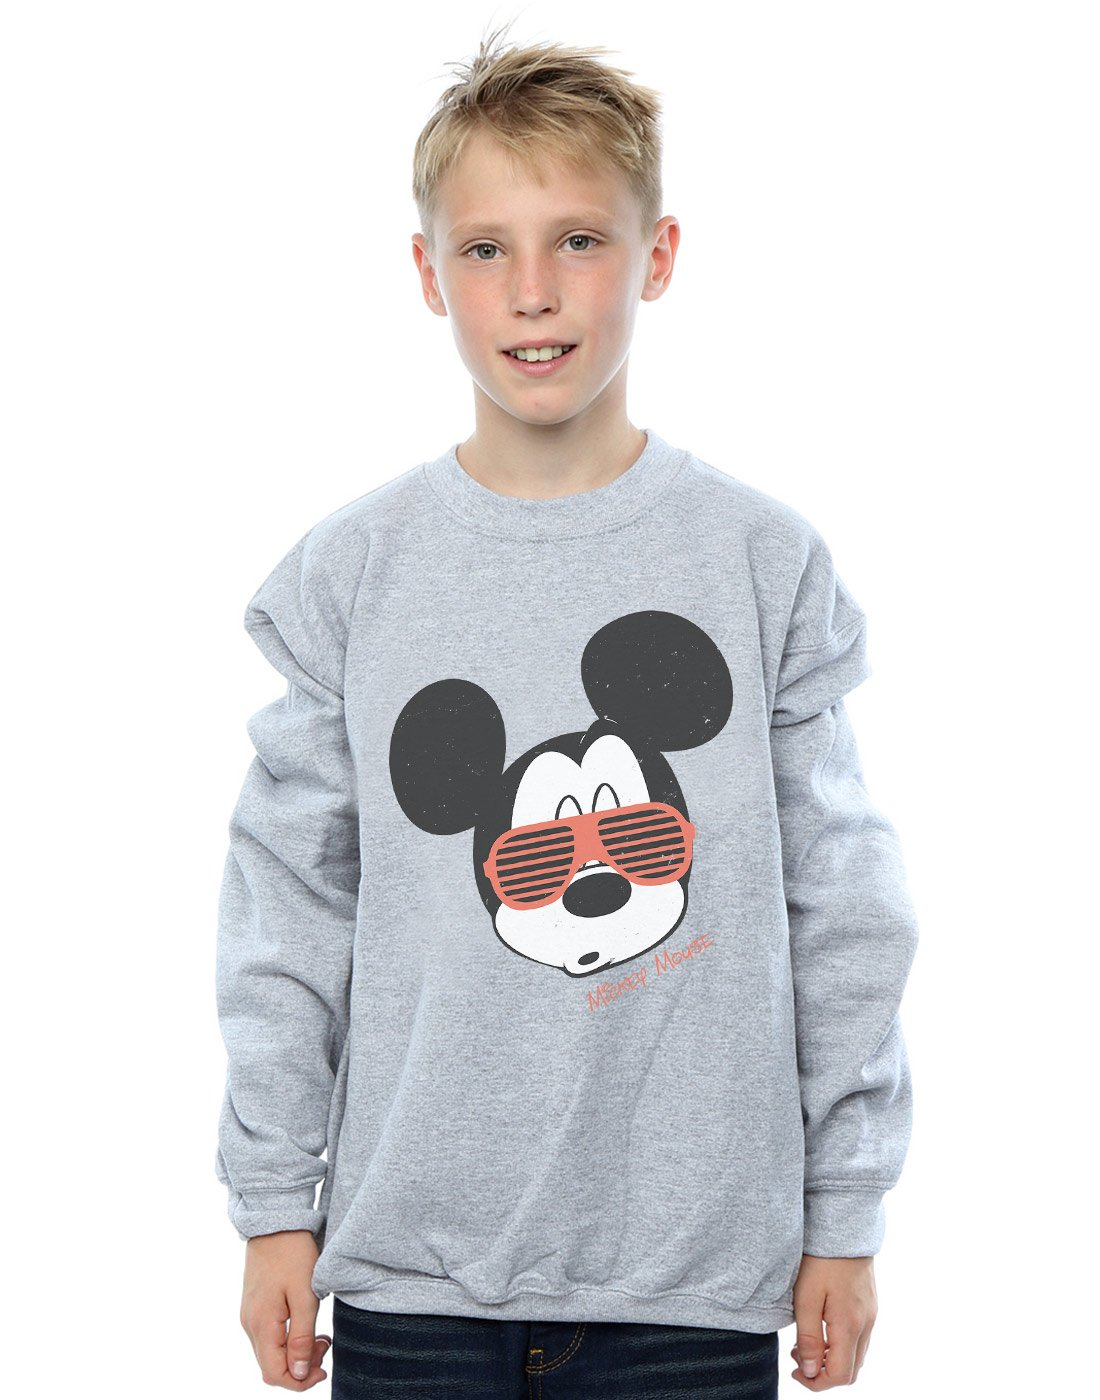 Disney Boys Mickey Mouse Sunglasses Sweatshirt Sport Grey 9-11 Years